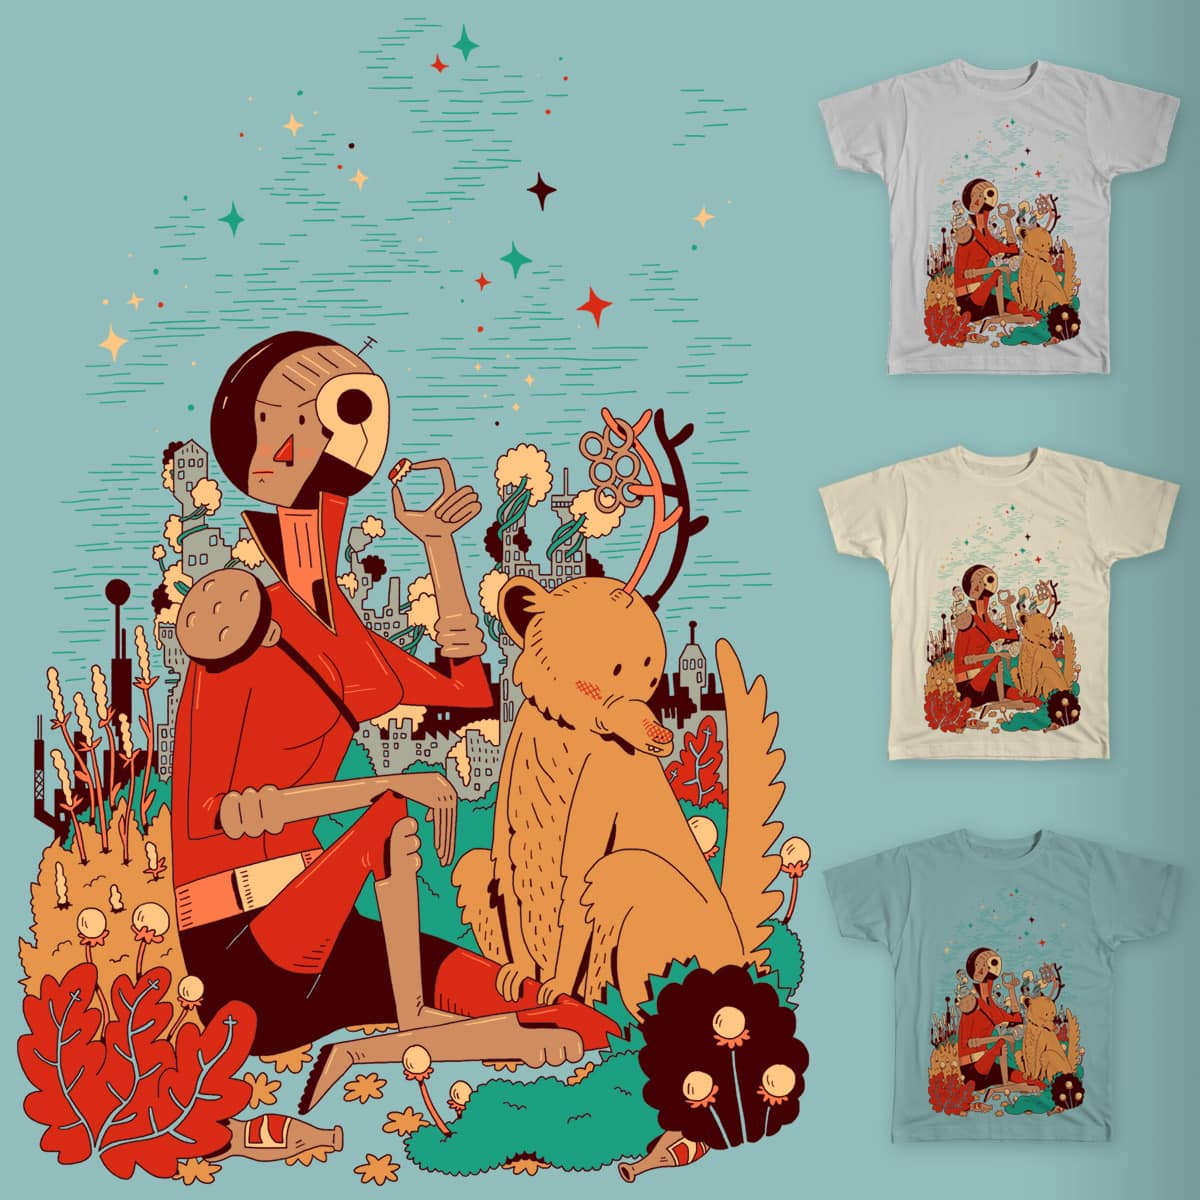 Overgrowth Explorer by BurritoGoblin on Threadless